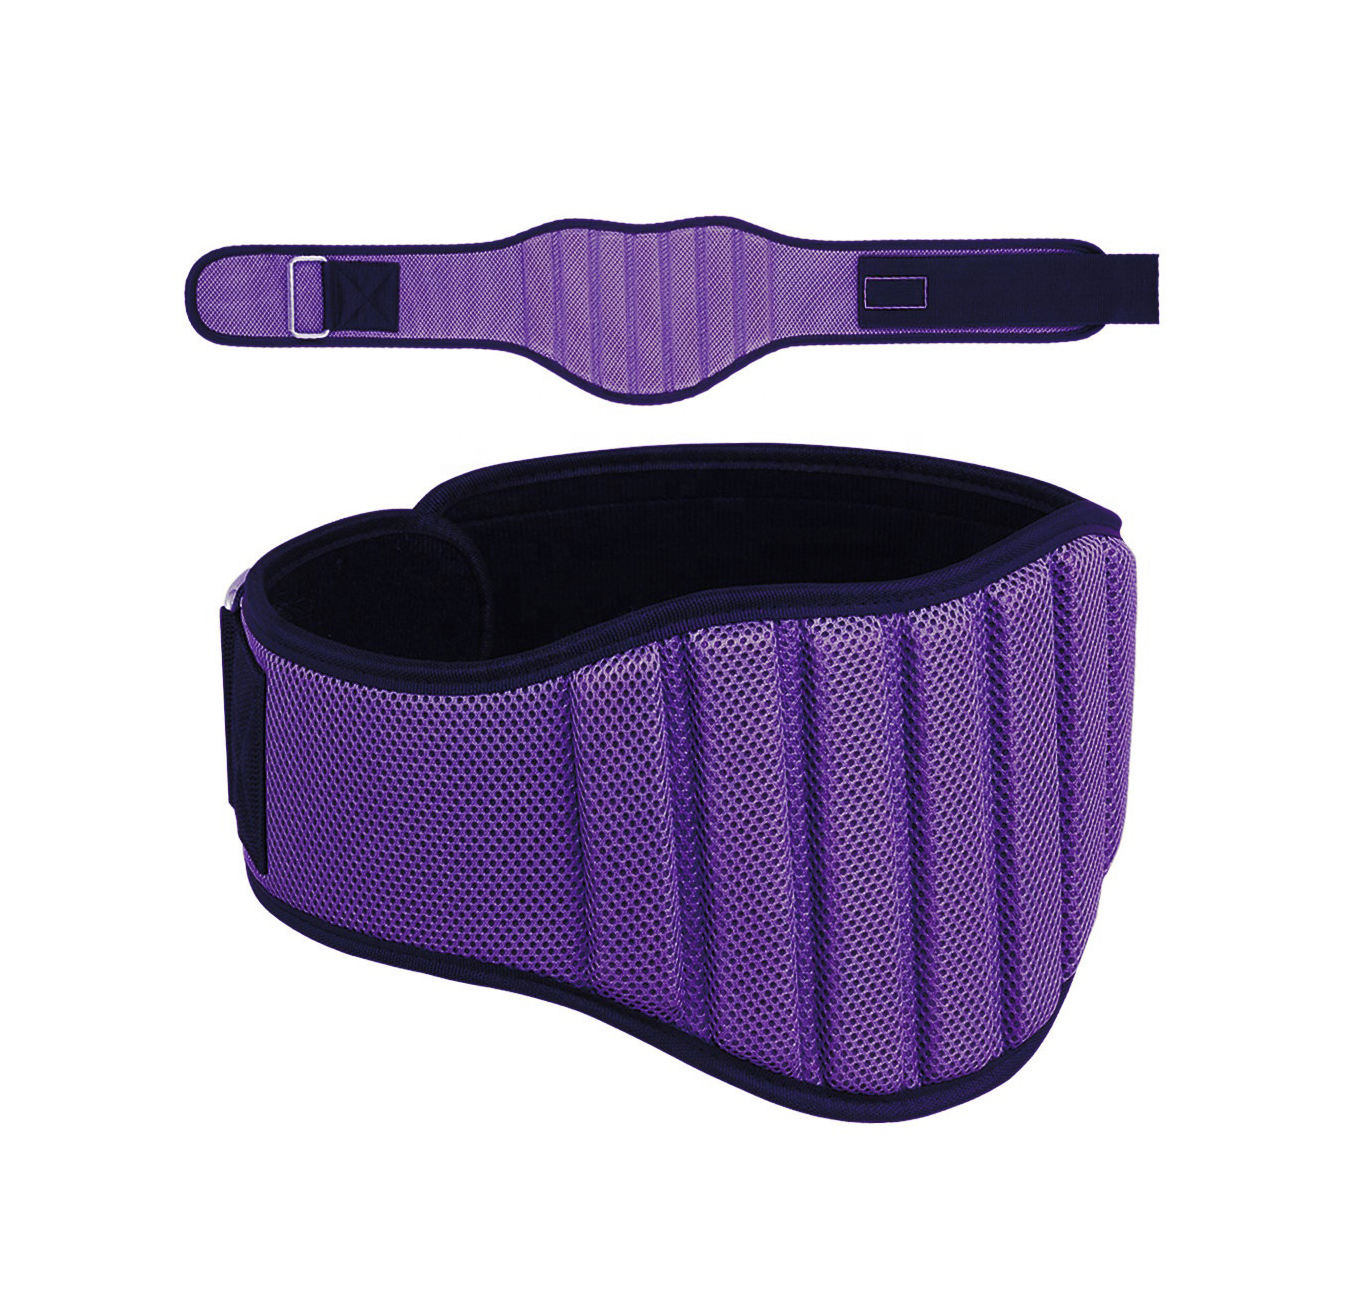 Lever buckle Bodybuilding Belts/Weight Lifting Belt Gym <span class=keywords><strong>Training</strong></span> Back Support